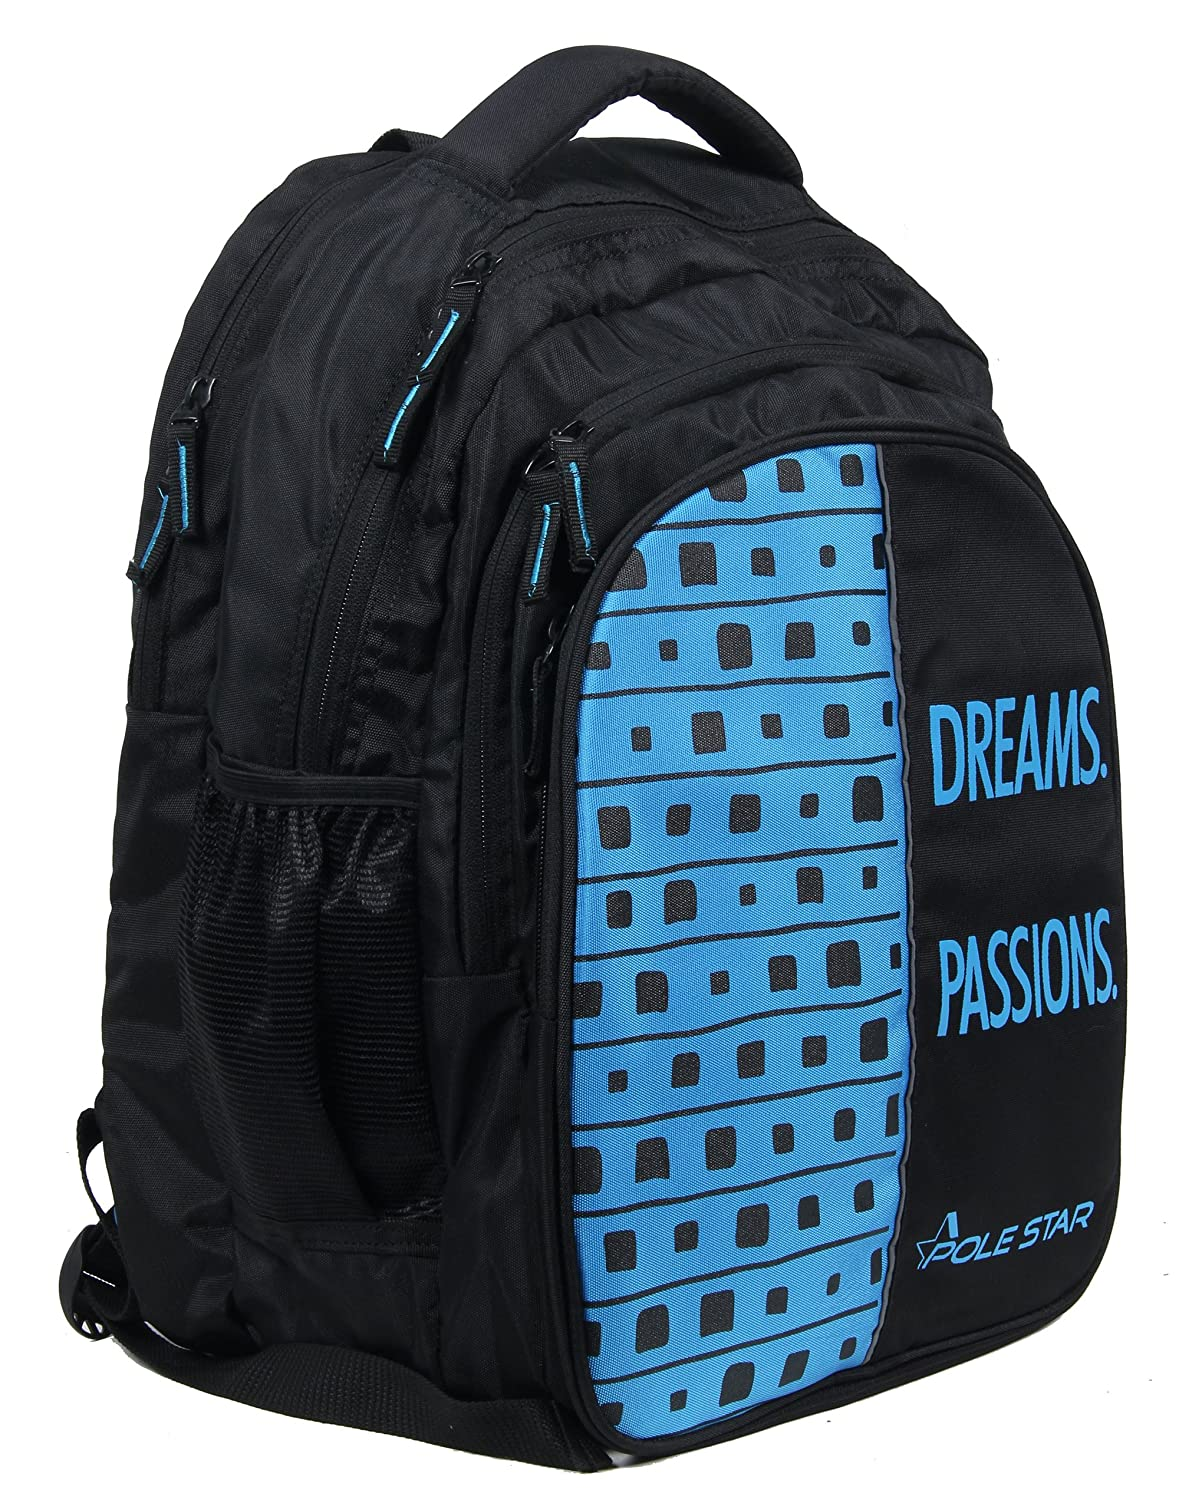 best kids backpack,